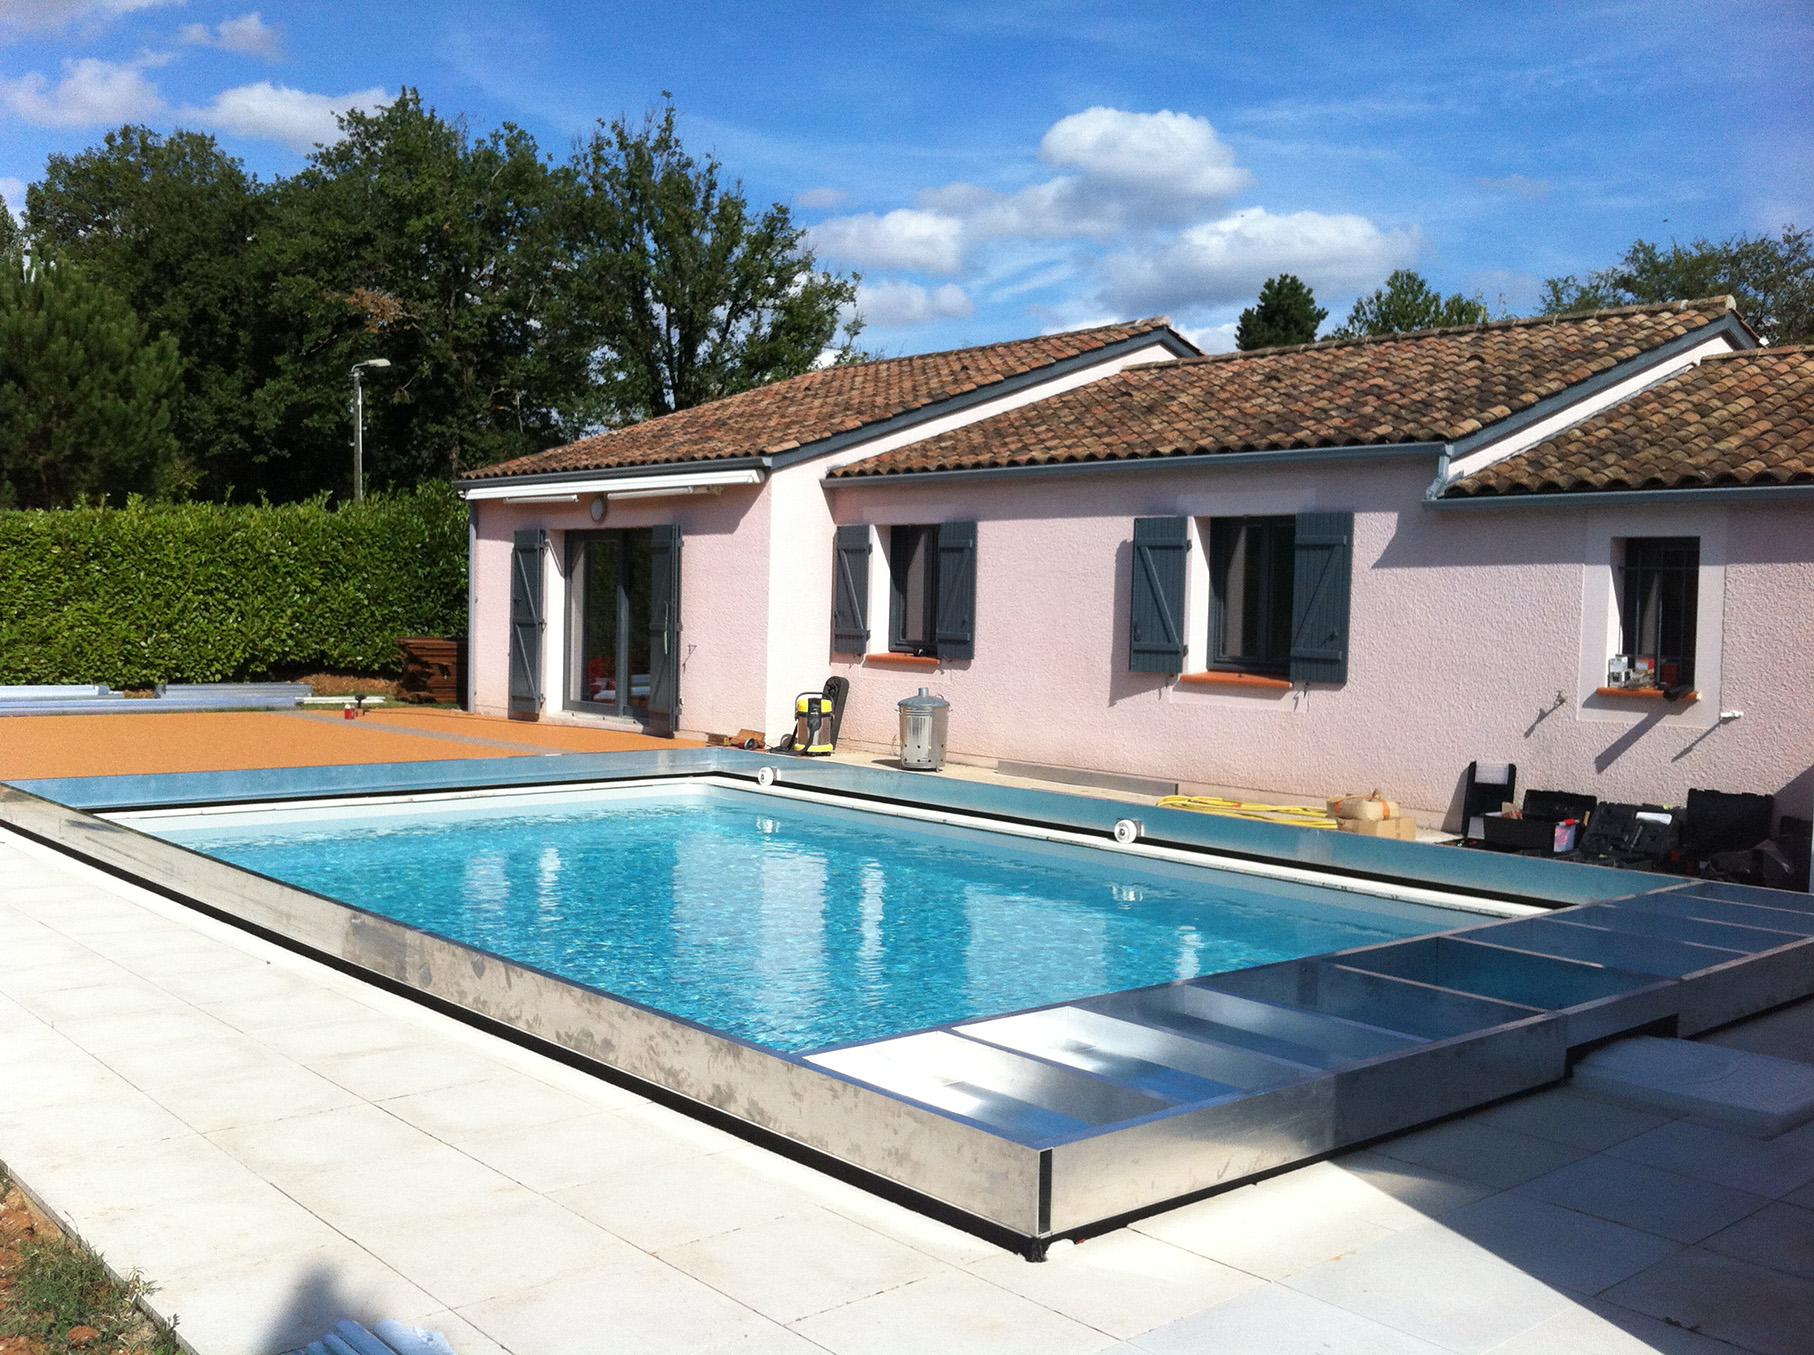 Piscine fond mobile tarif le blog des professionnels de for Tarif construction piscine